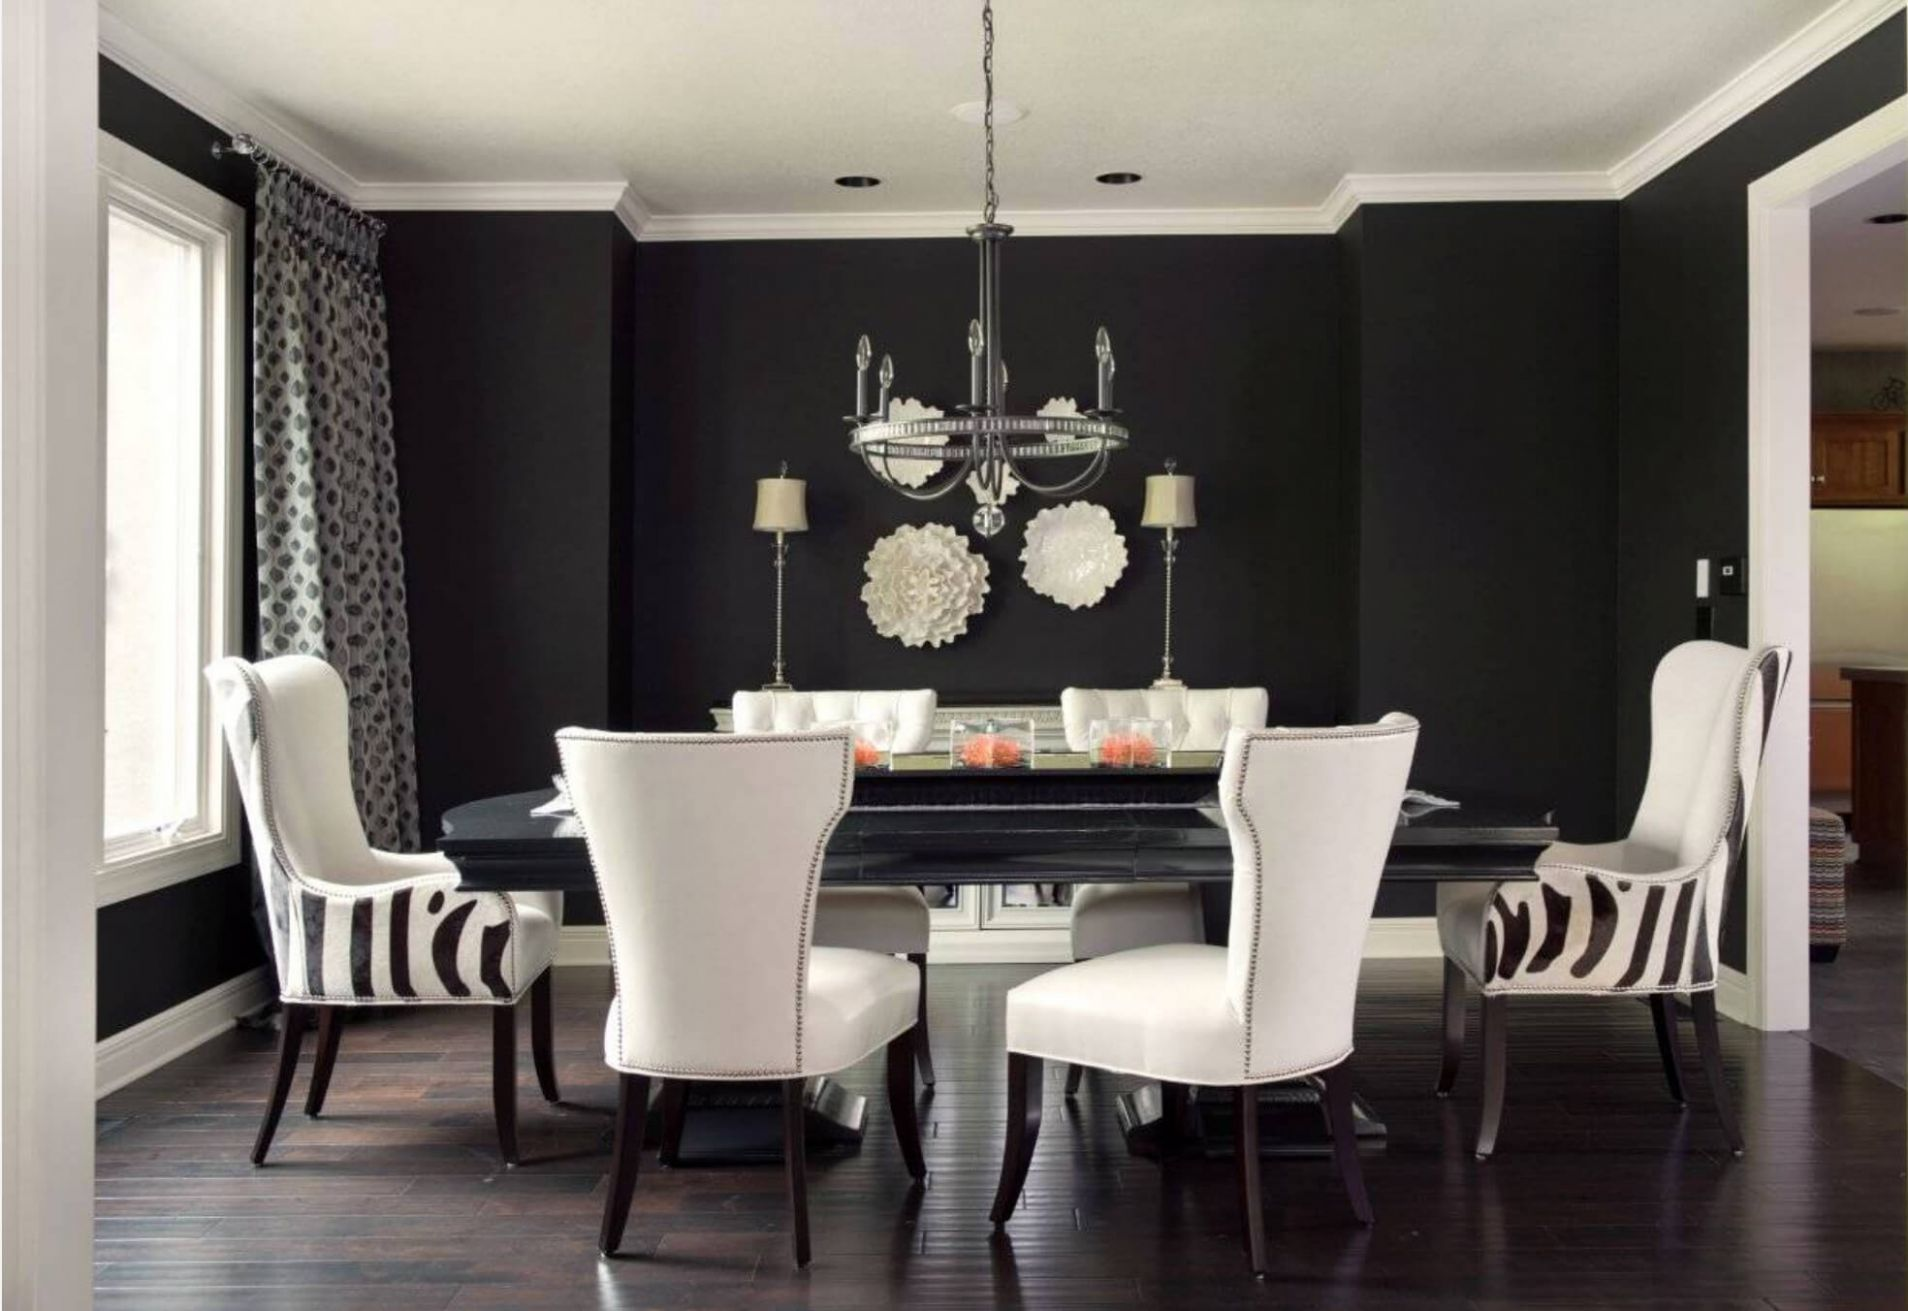 10 Creative Ideas for Dining Room Walls | Freshome